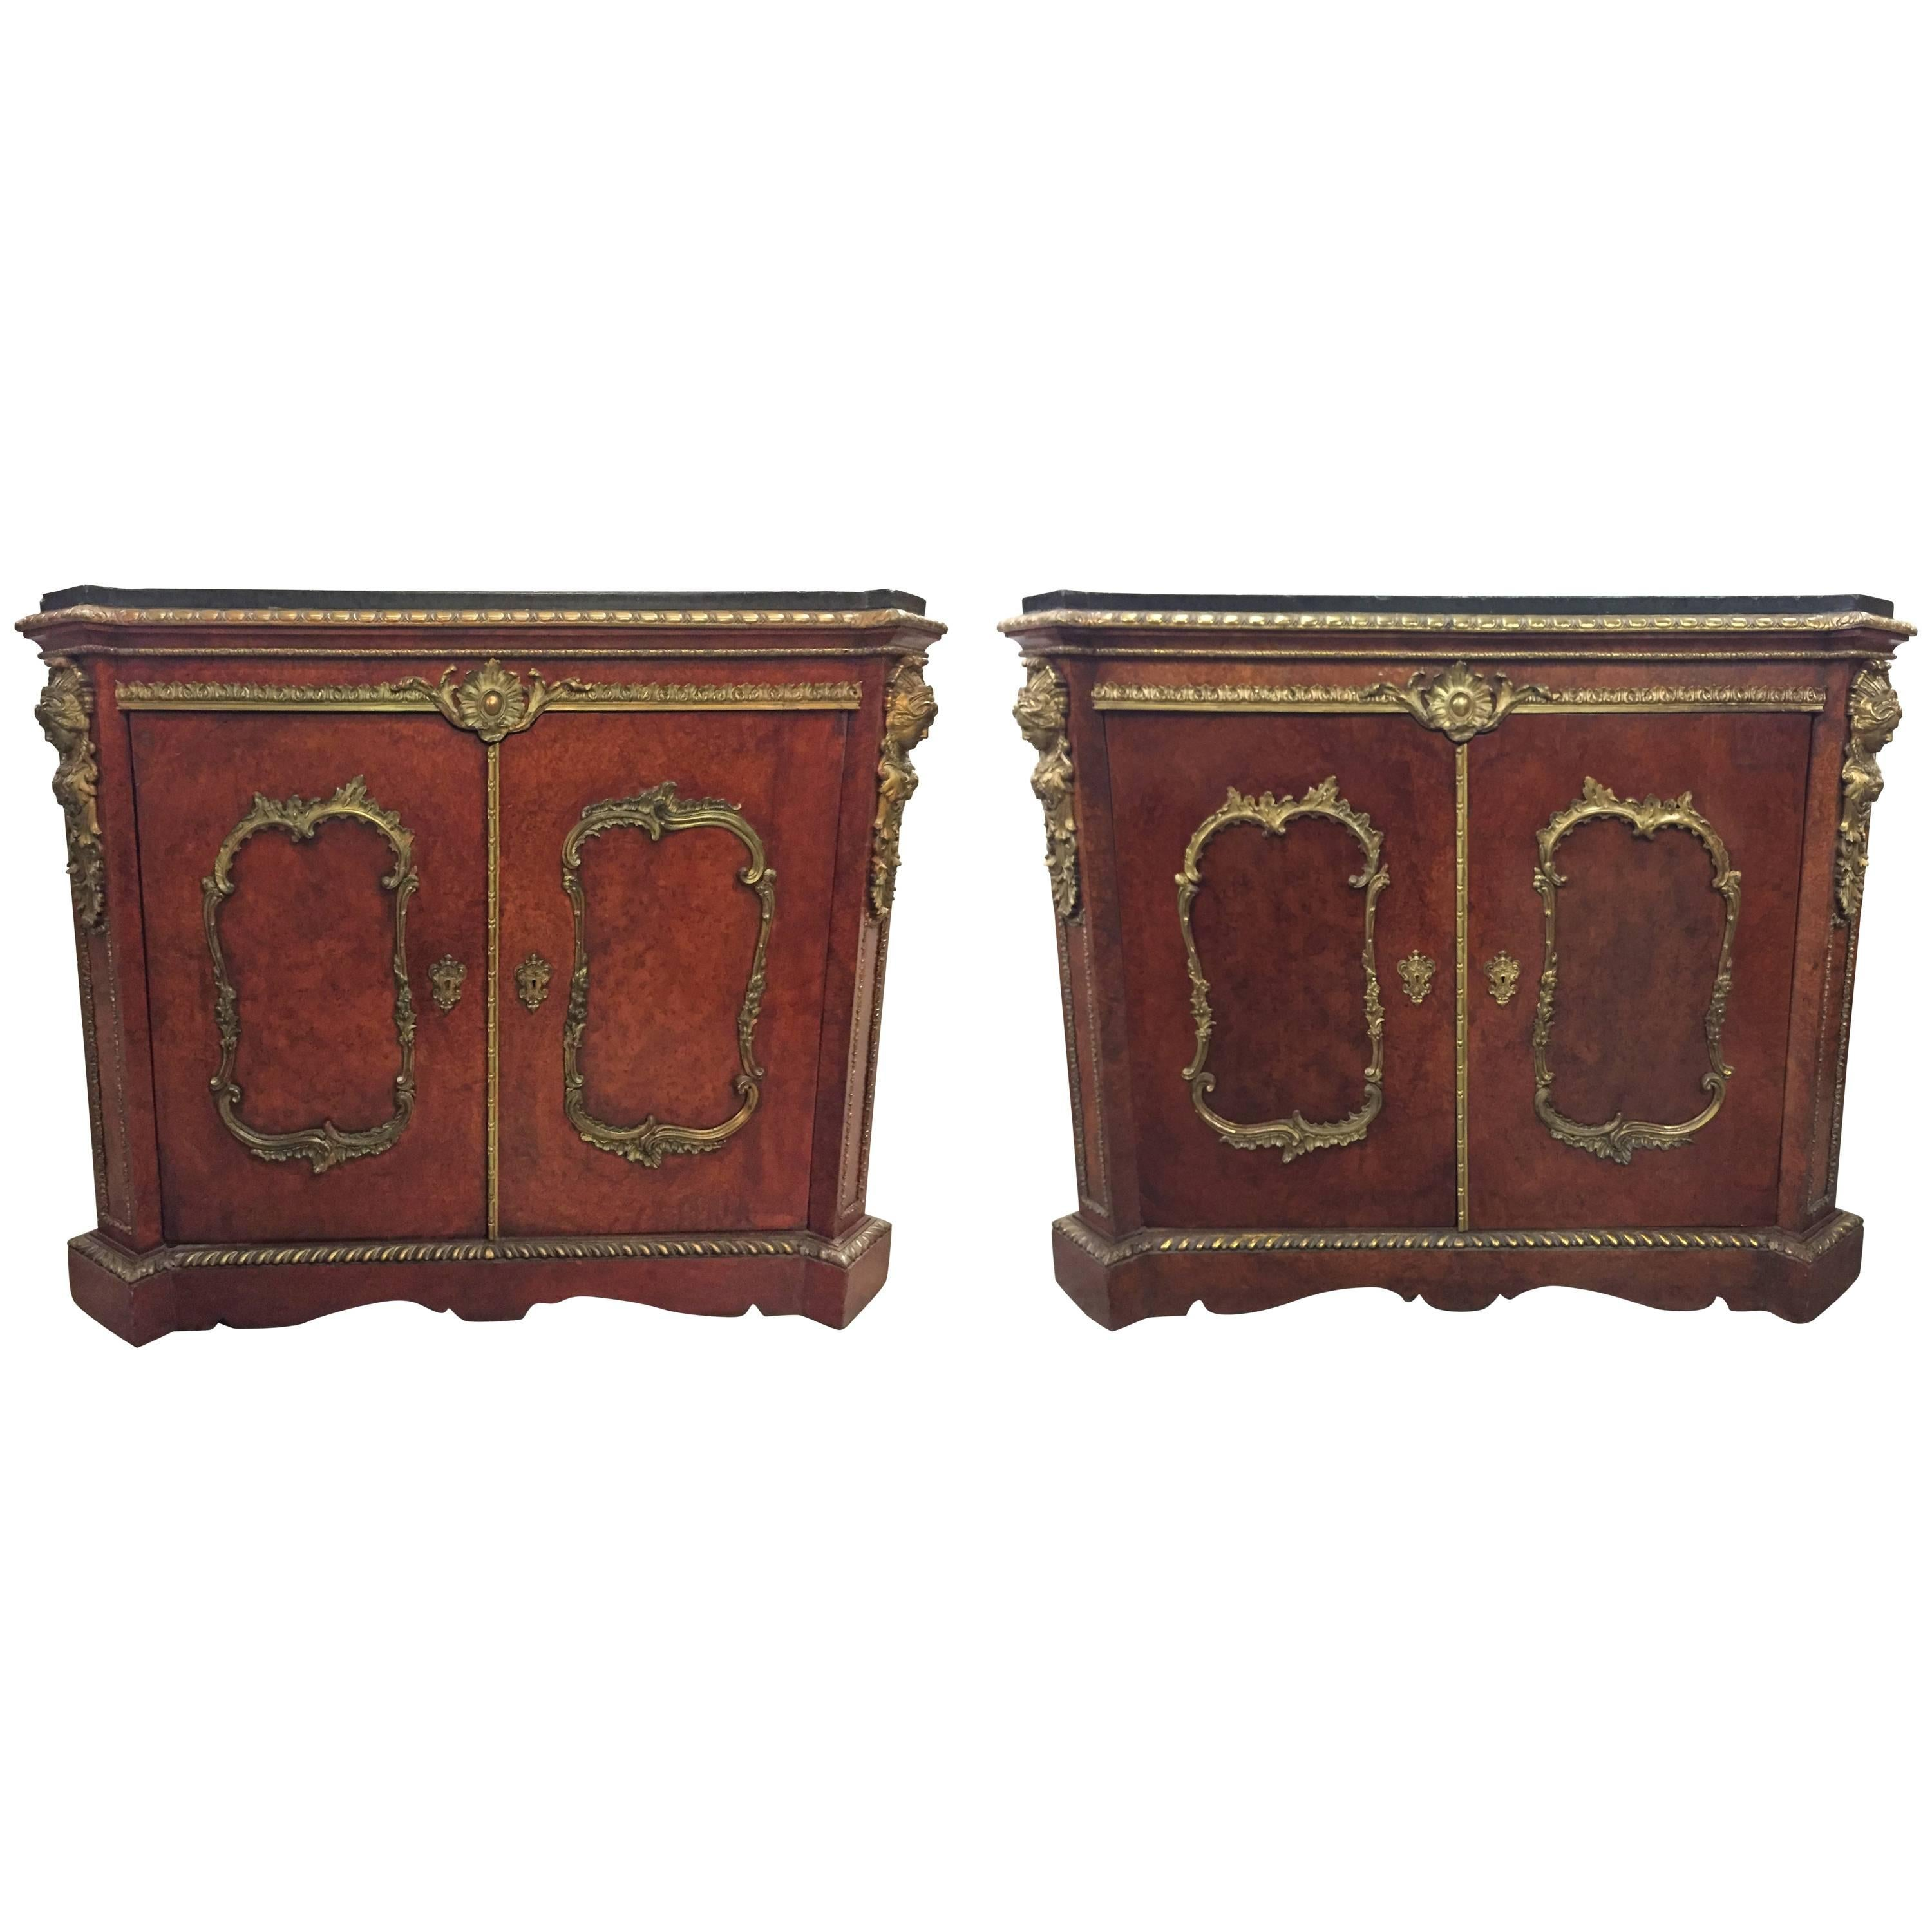 Pair of French Gilt Bronze-Mounted Cabinets, 19th Century